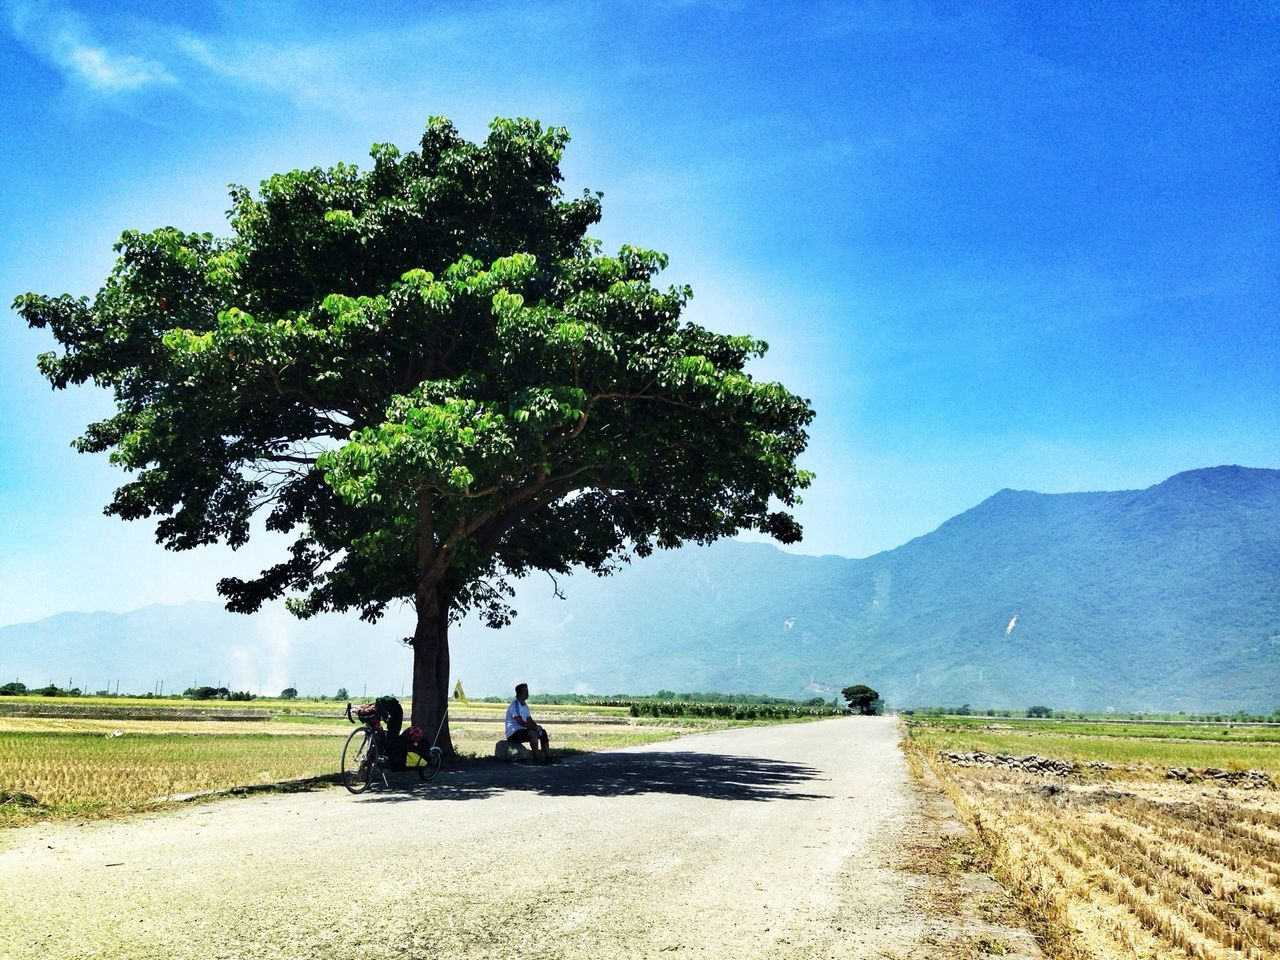 Man Sitting Under Tree On Road Against Mountains